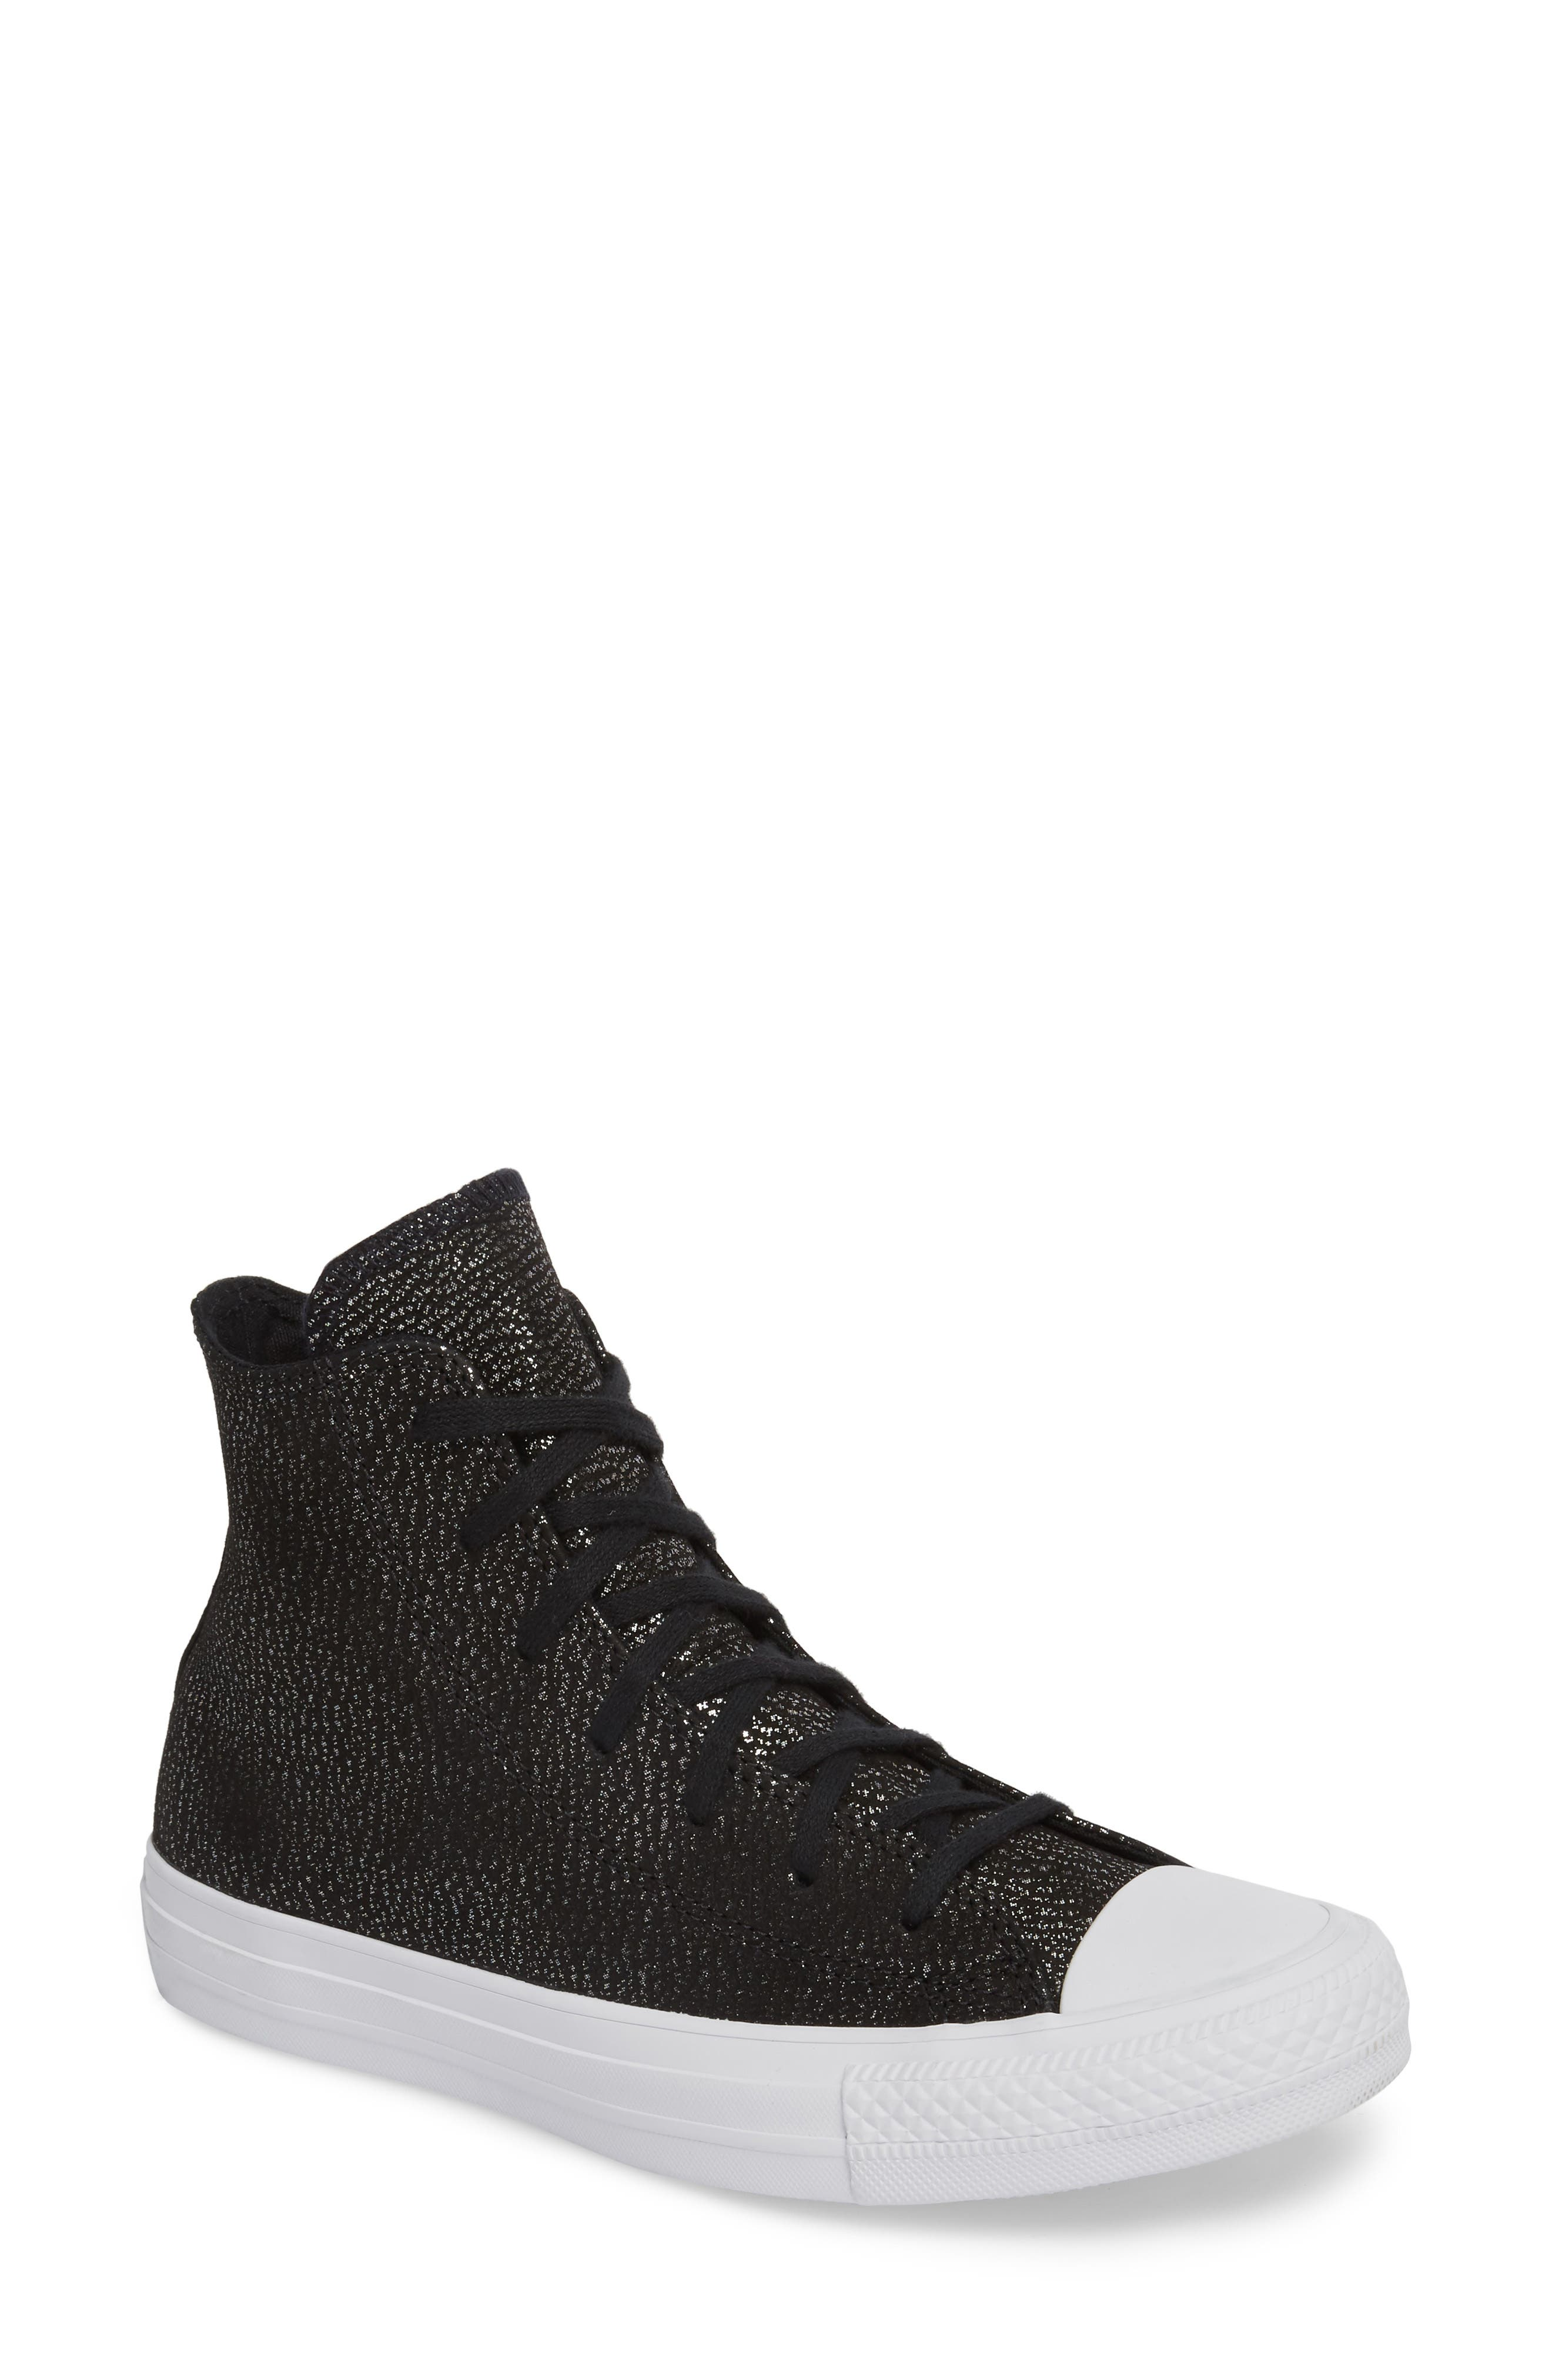 Chuck Taylor<sup>®</sup> All Star<sup>®</sup> Tipped Metallic High Top Sneaker,                             Main thumbnail 1, color,                             Black